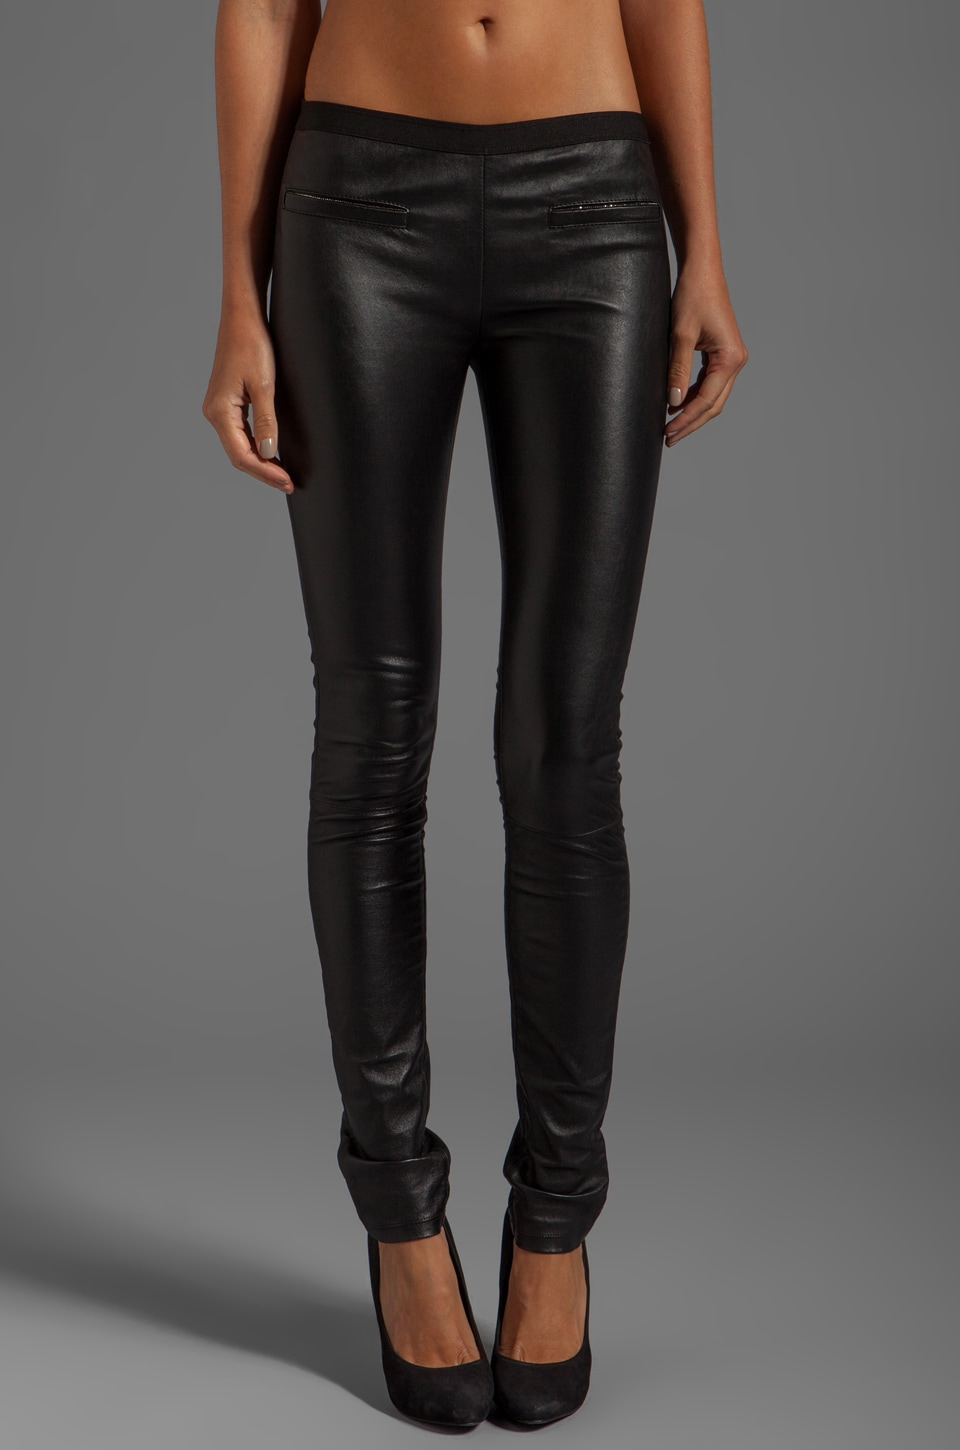 MILLY Stretch Plonge Leather Monic Pants in Black